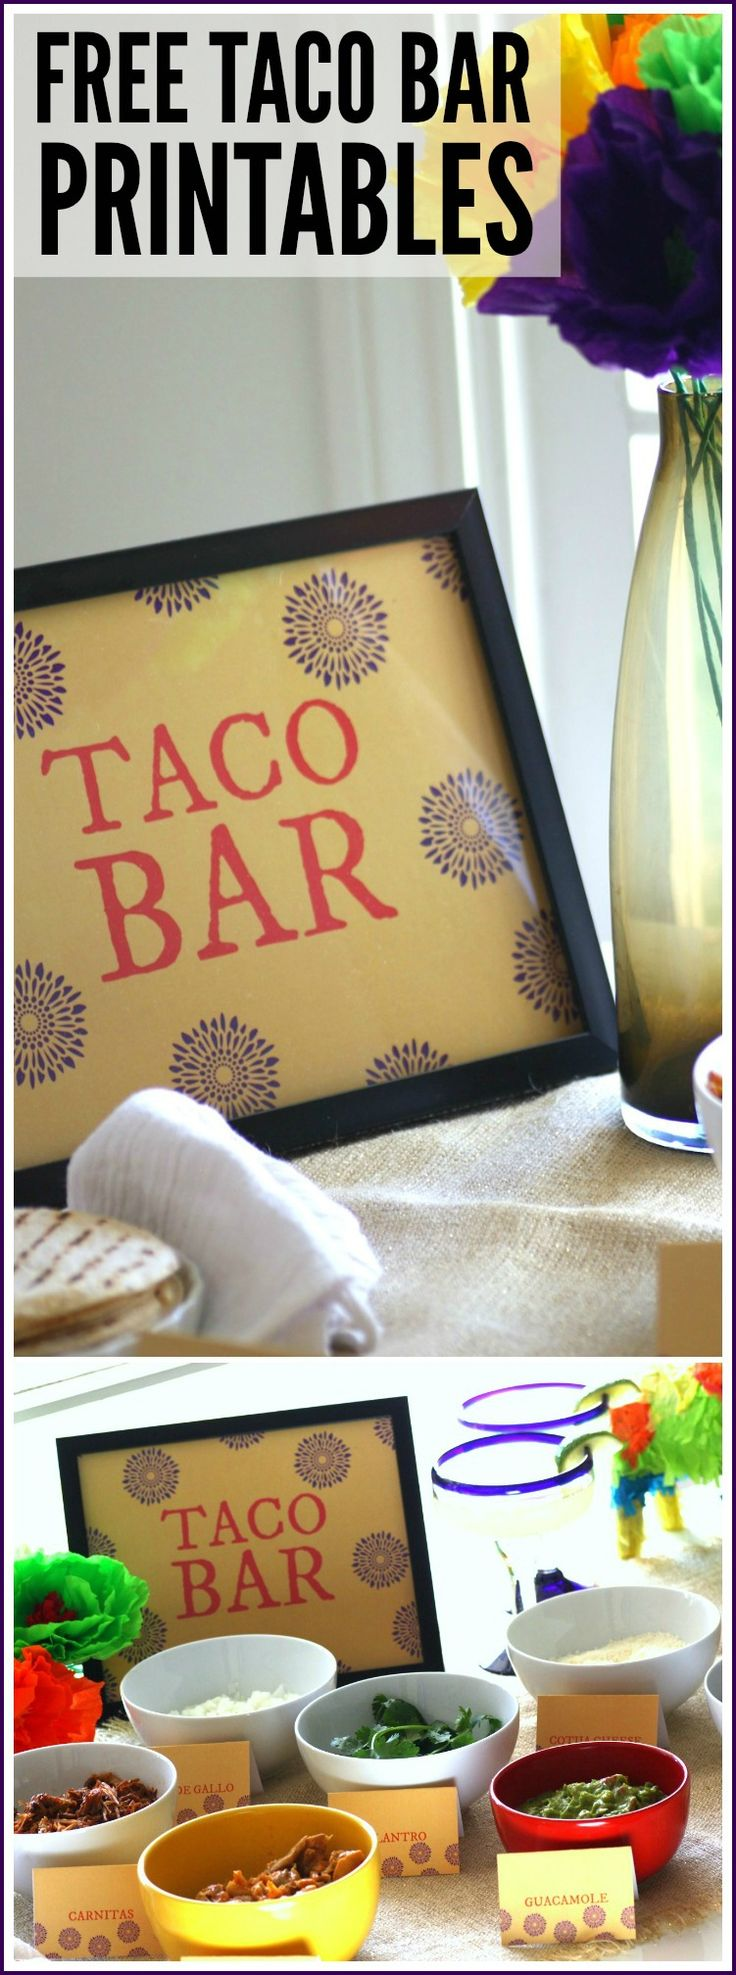 How about using our free editable taco bar printables to decorate your Cinco de Mayo party!